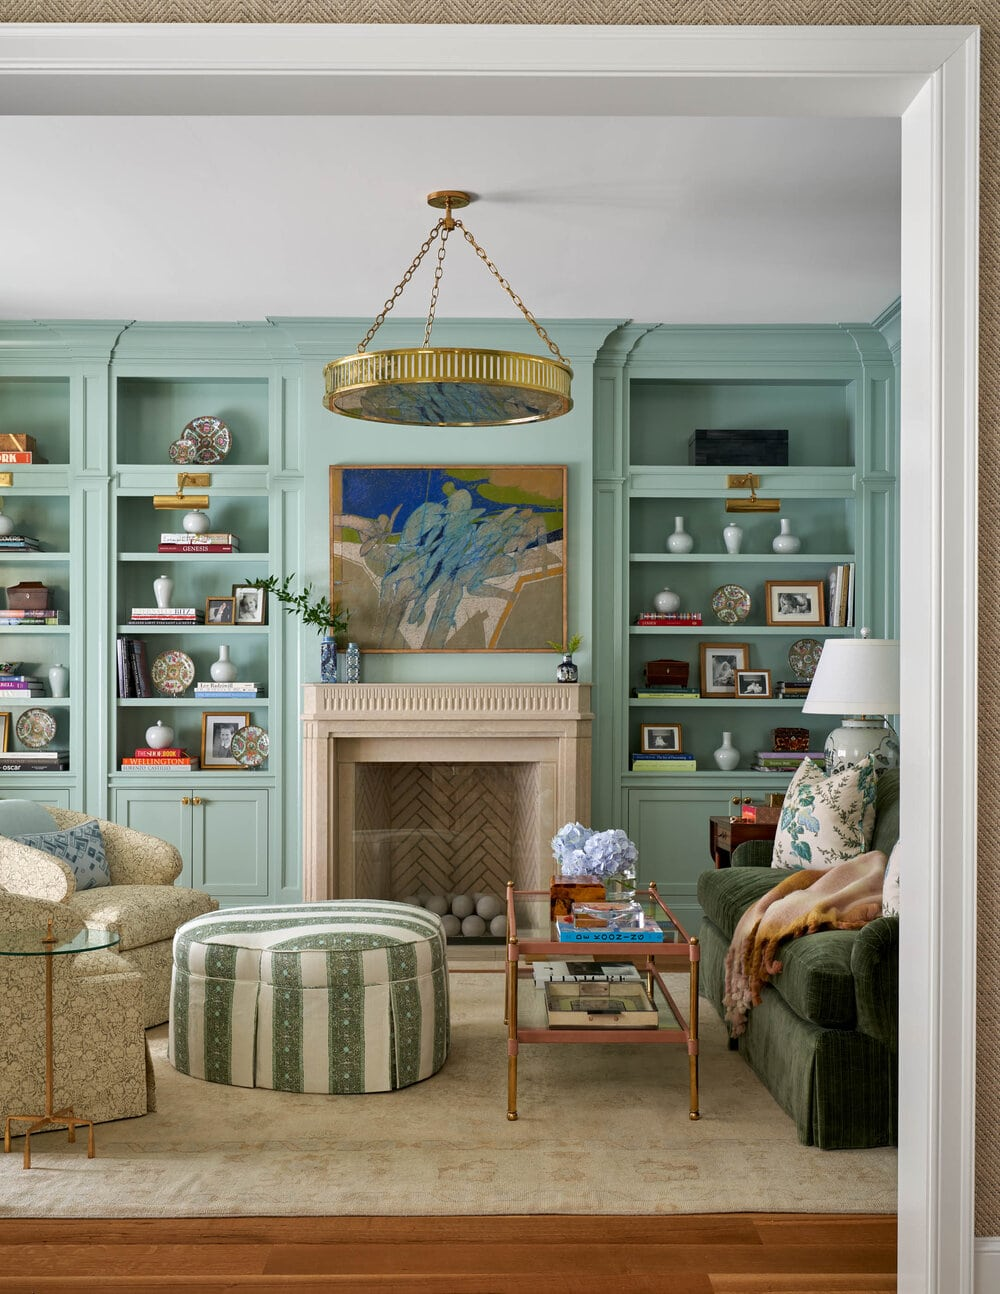 Mary Beth Wagner bookcases